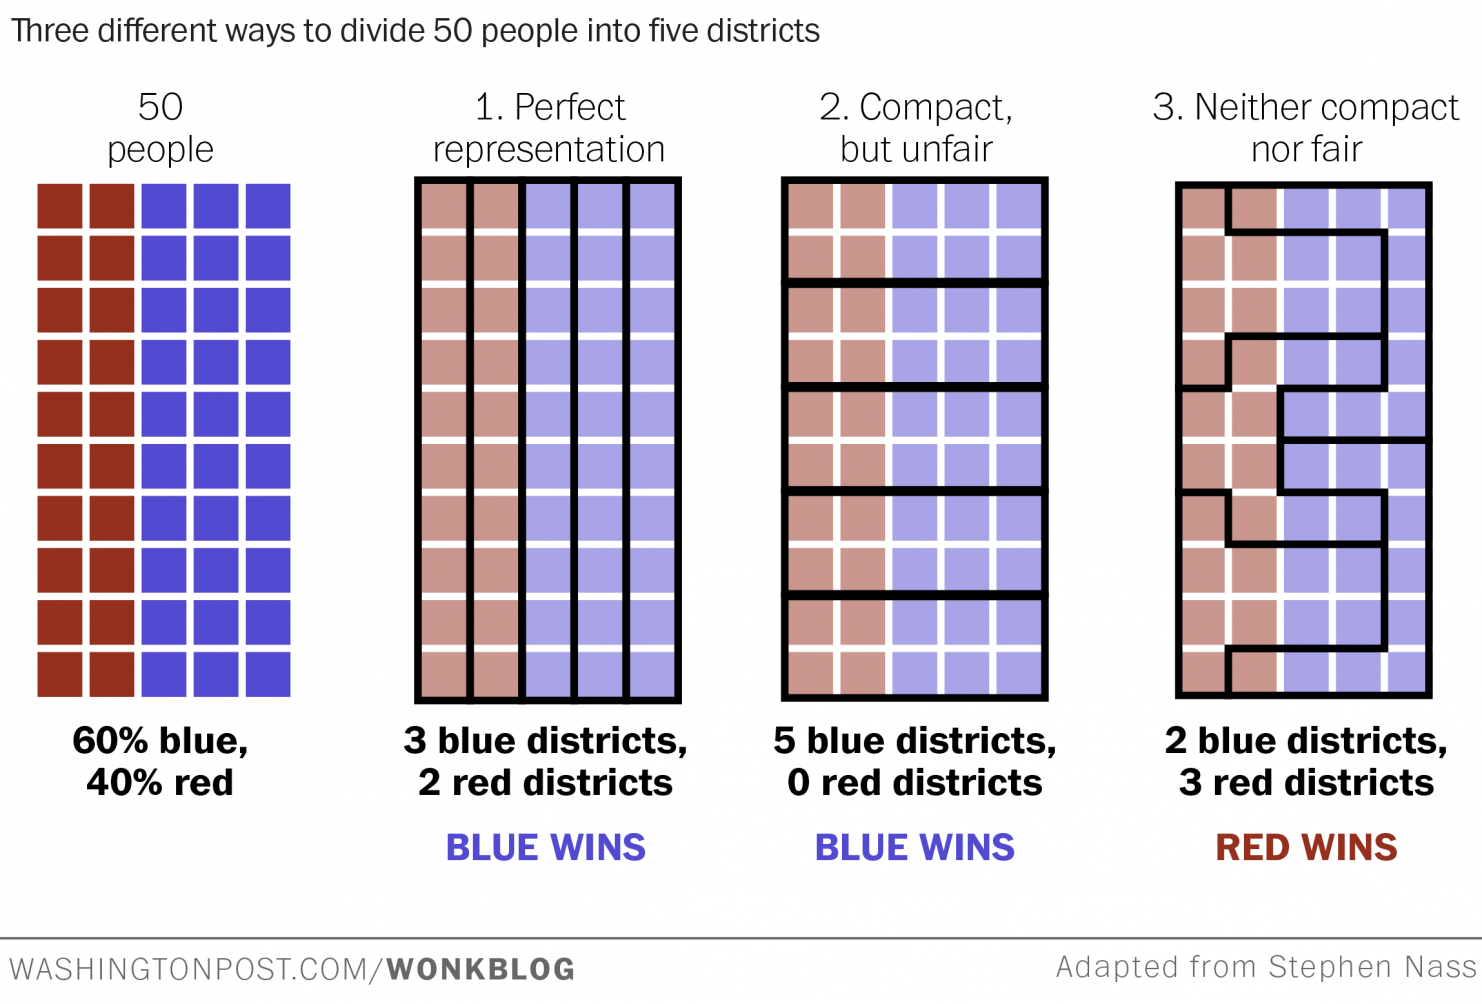 WaPo_gerrymandering_image_2.png